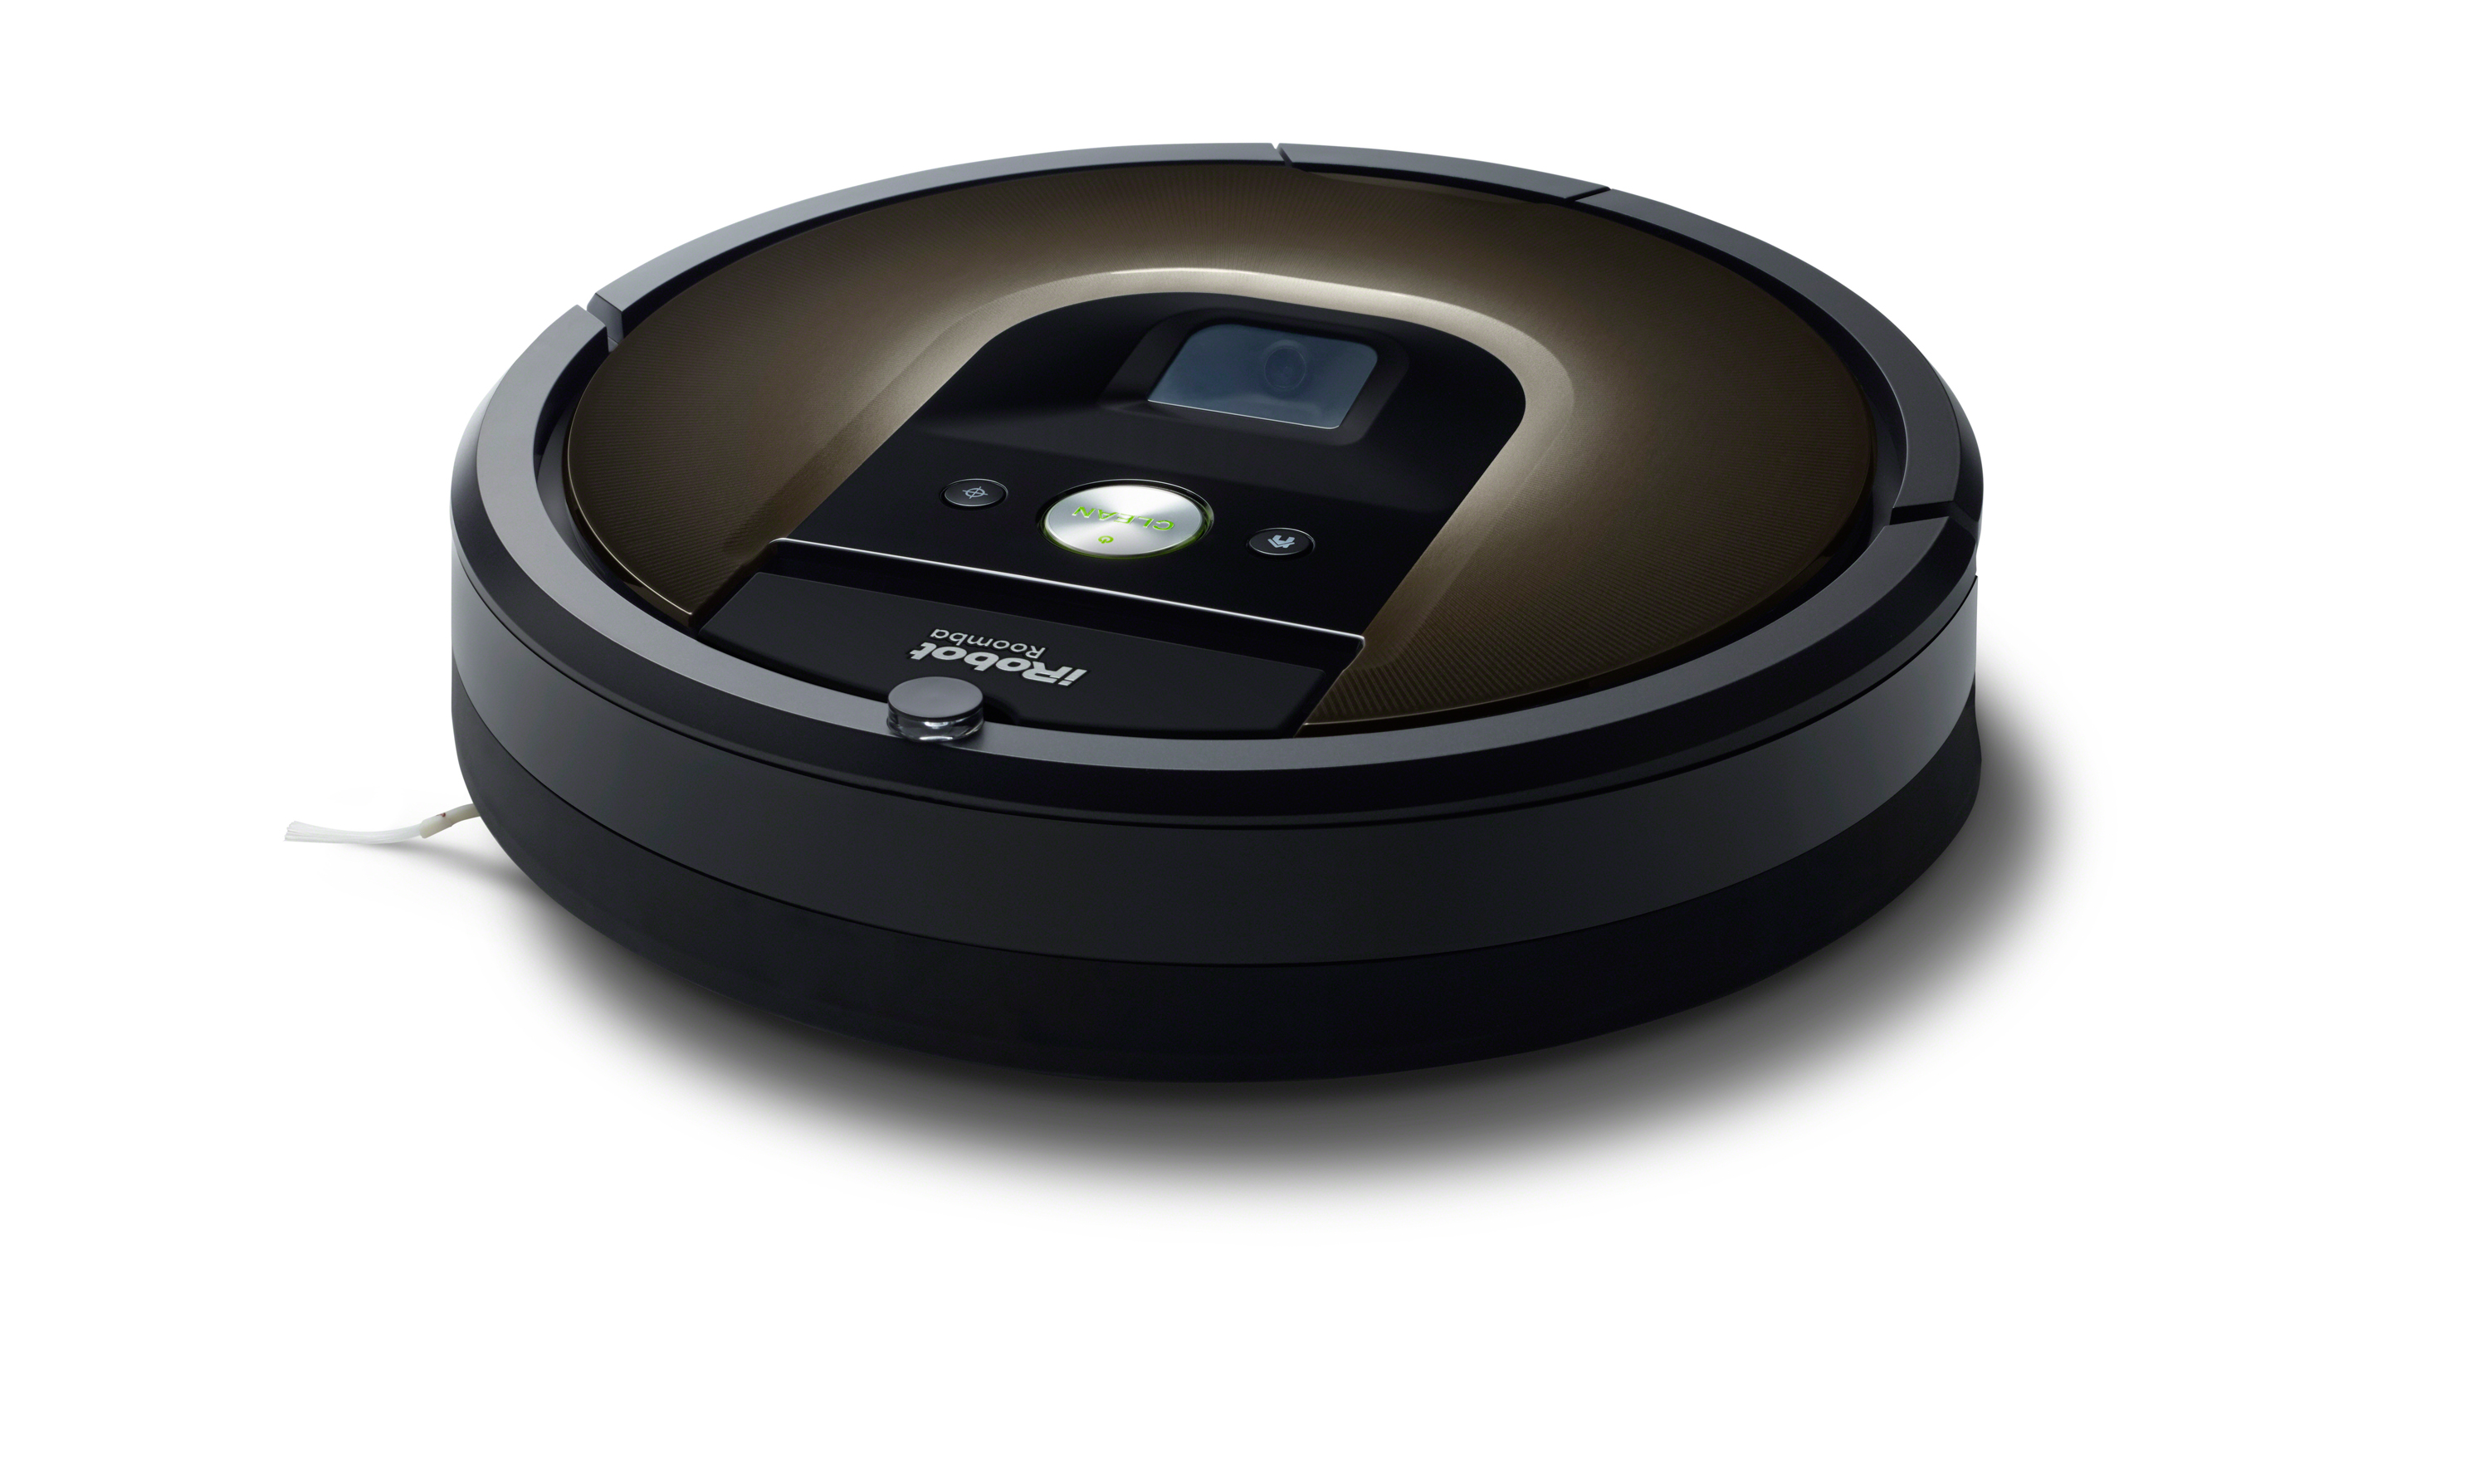 All about the robot vacuums